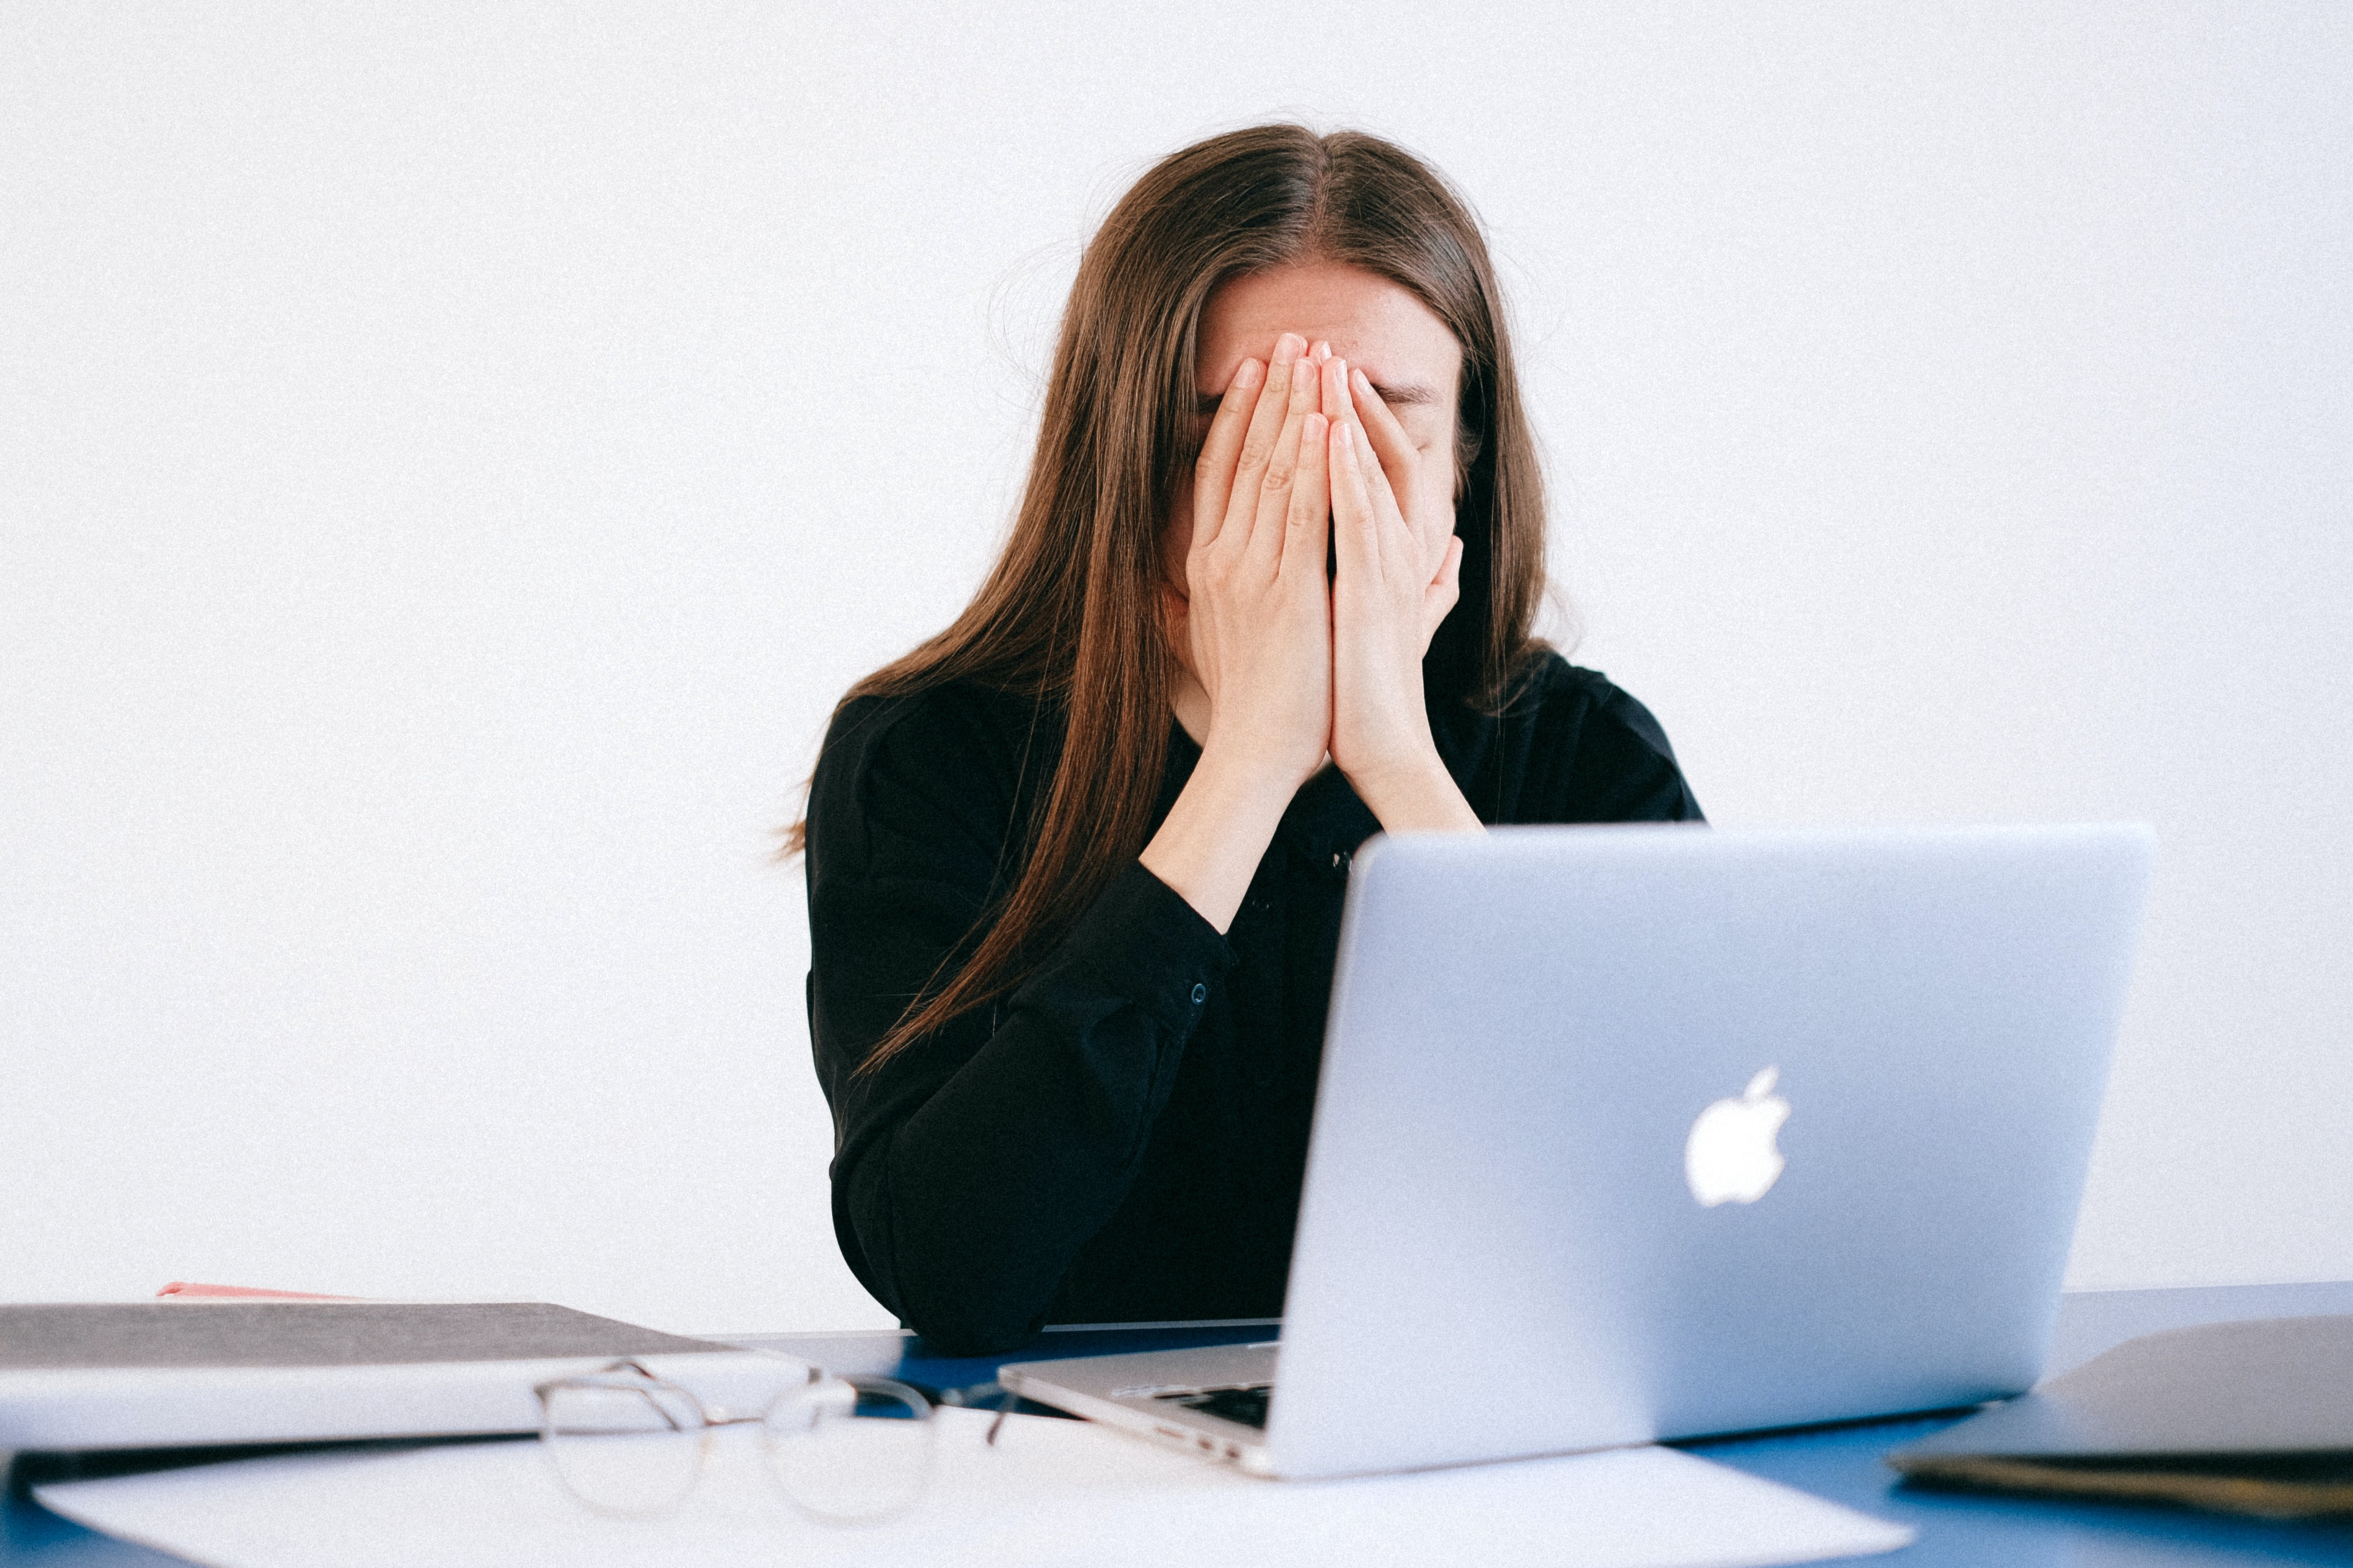 4 Reasons Editors Keep Rejecting Your Work